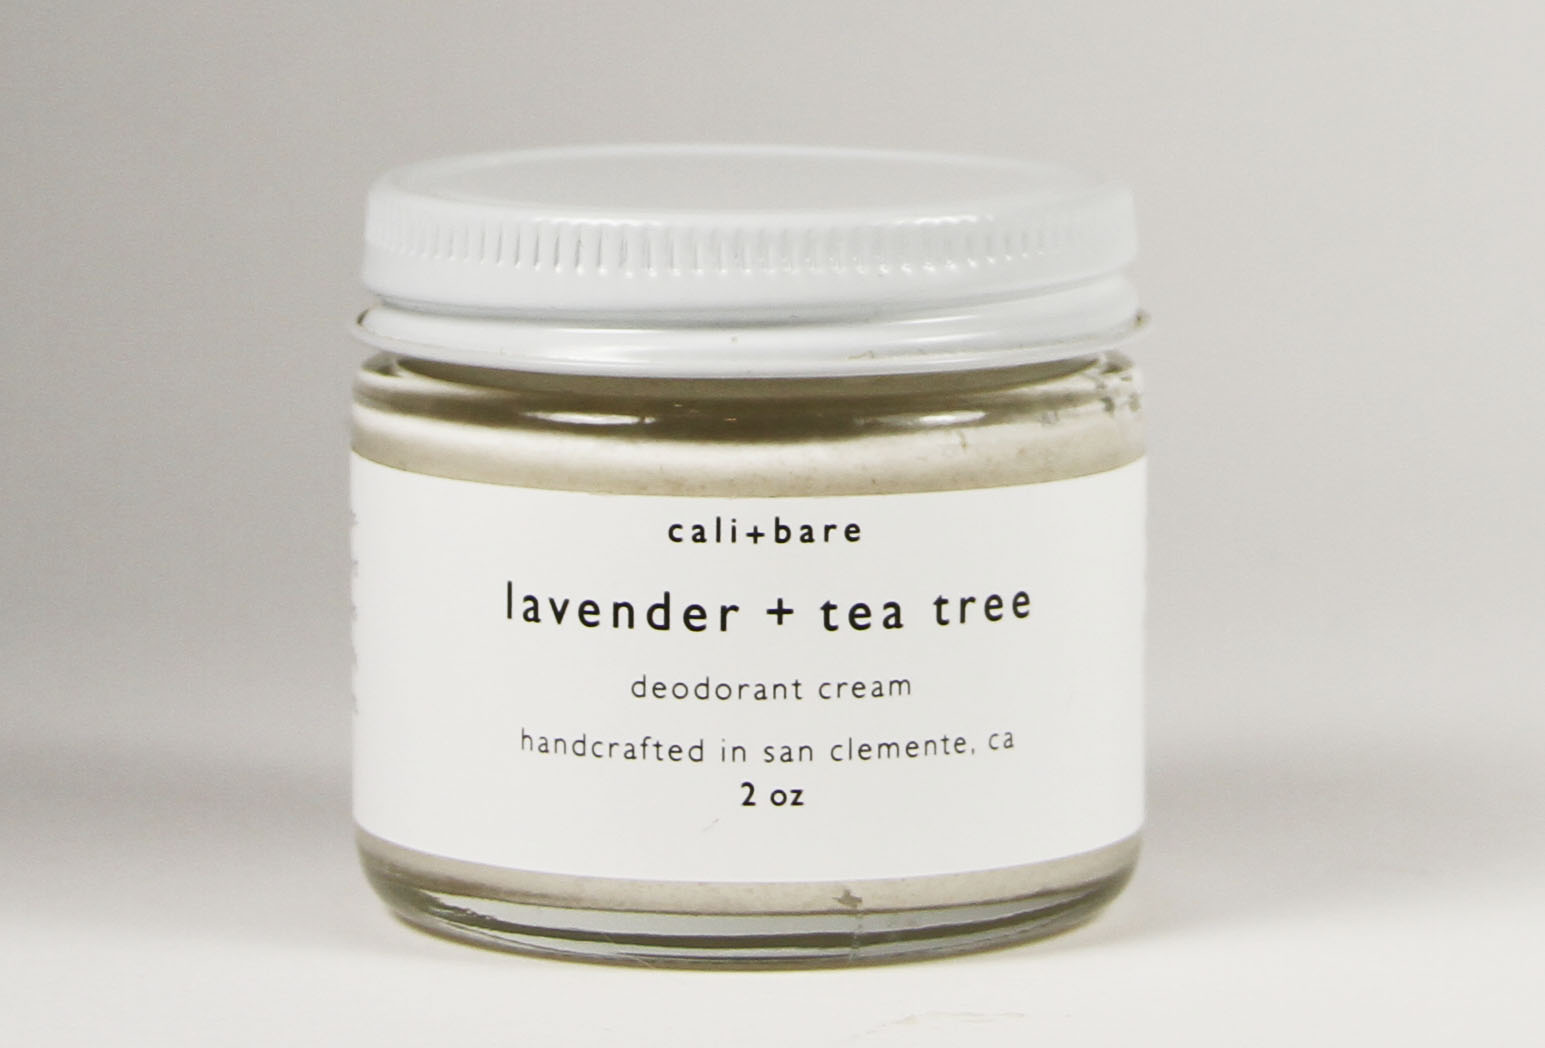 cali+bare Lavender and Tea Tree Deodorant Cream